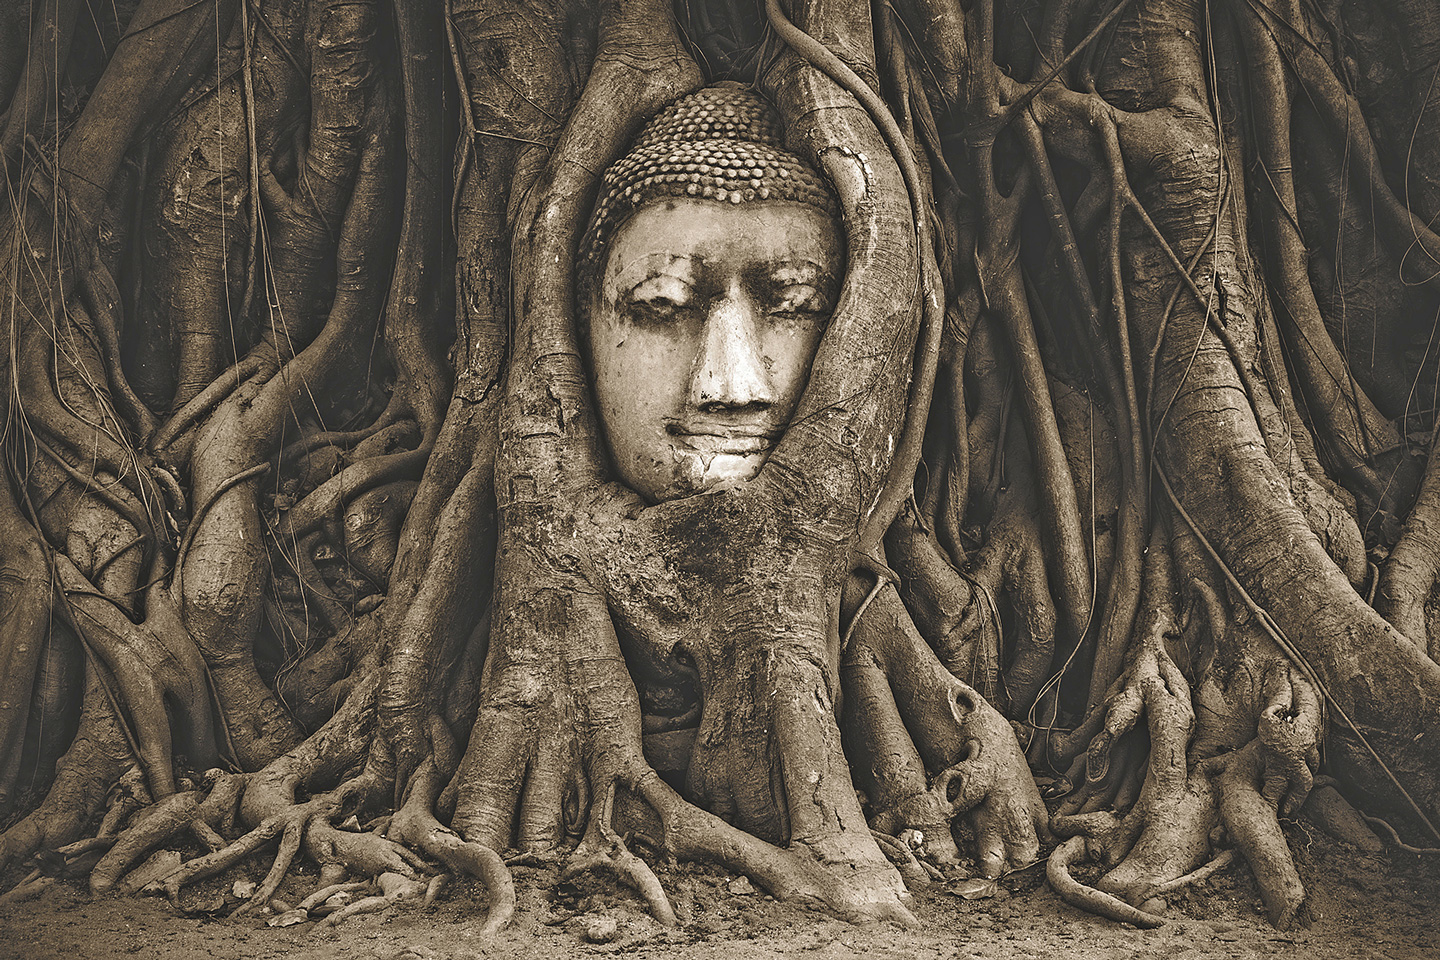 Buddha face between mangrove roots